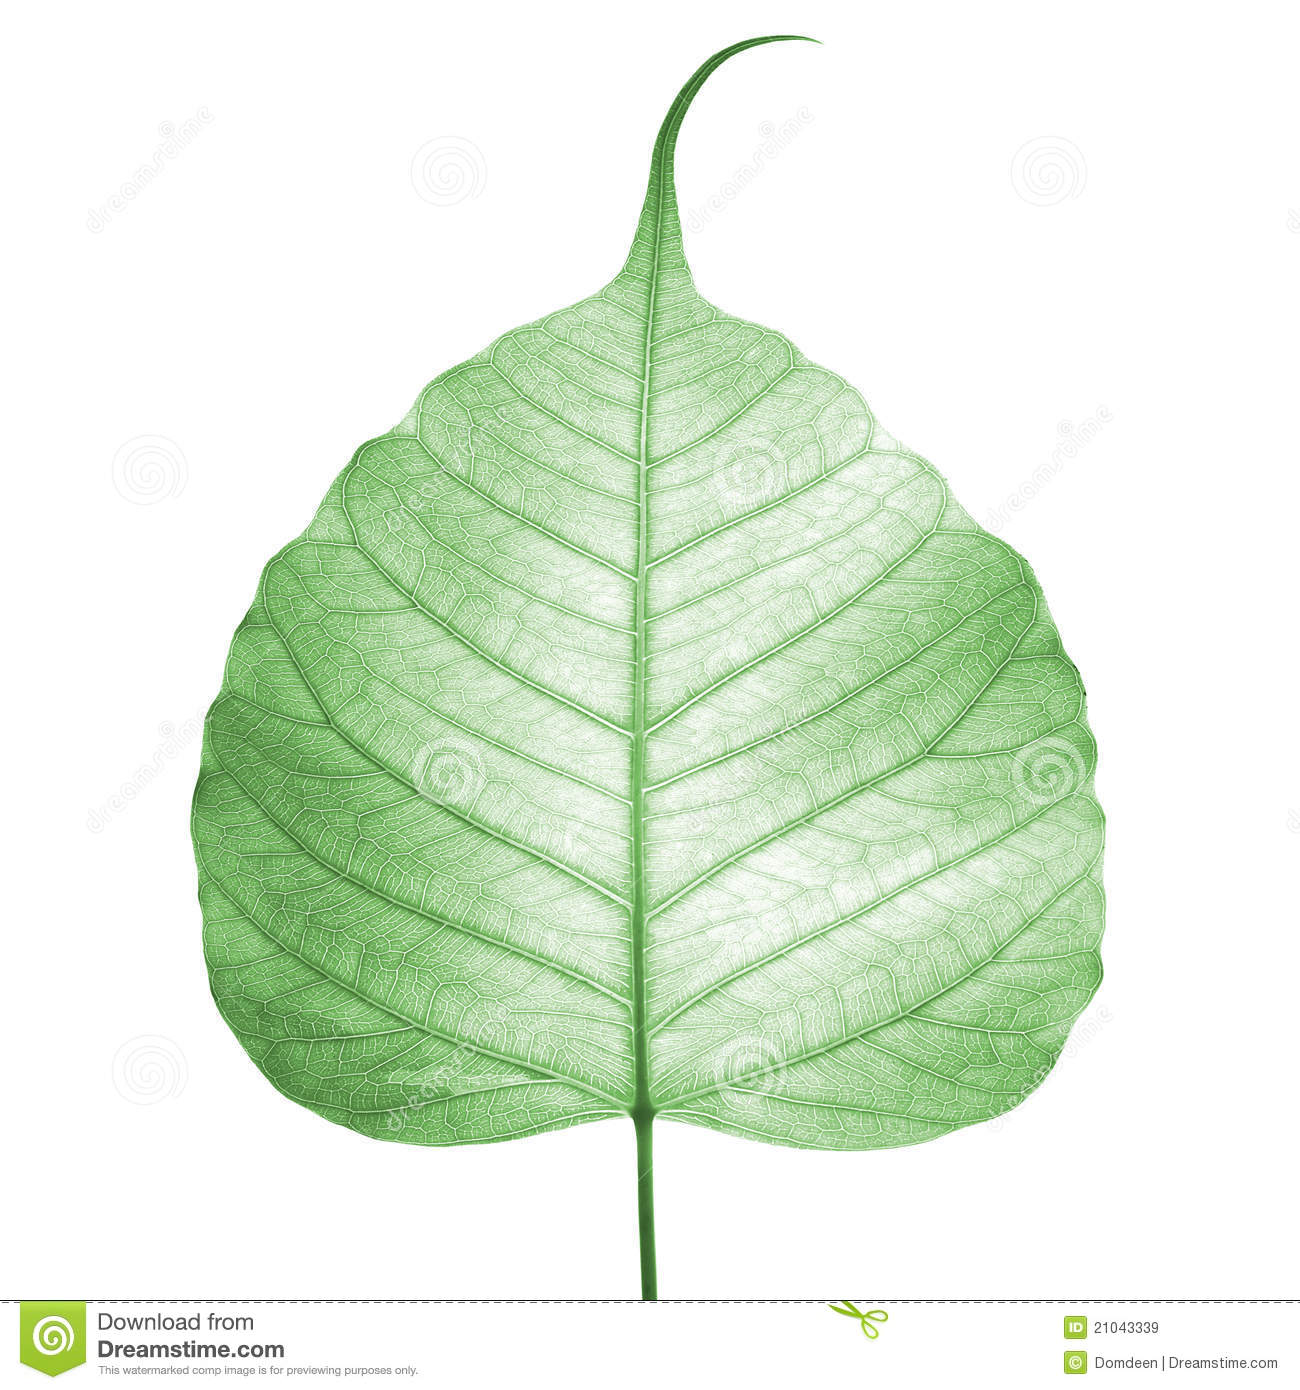 Bodhi Leaf Stock Photos, Images, & Pictures.